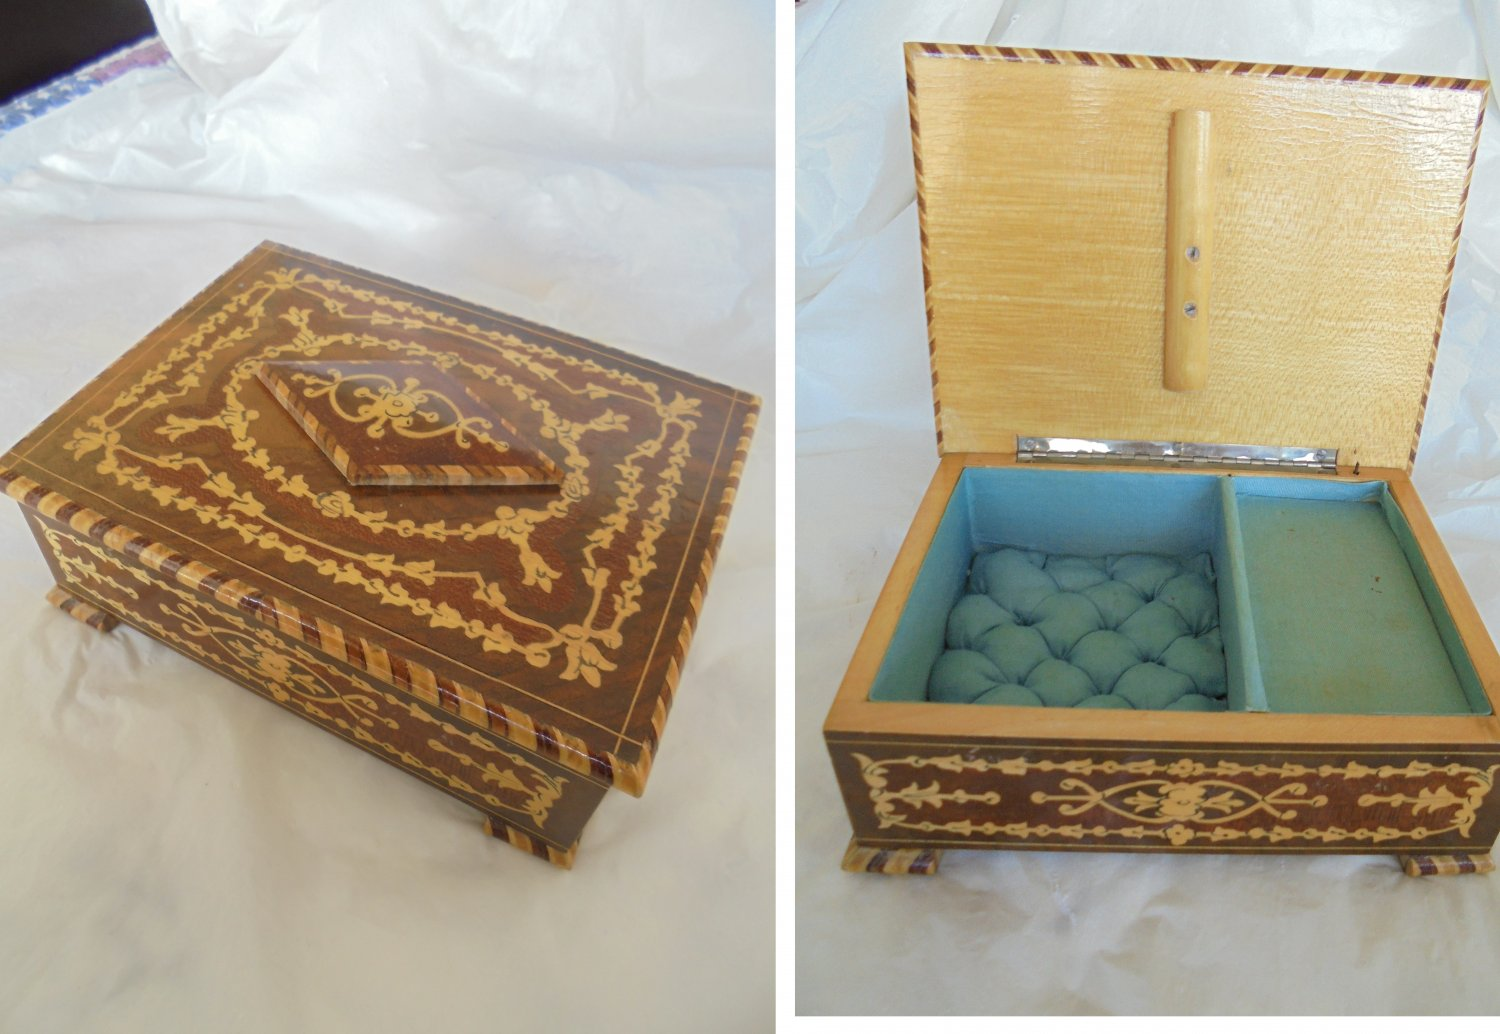 CARILLON JEWELS Music BOX in arabesque wood work from Salerno Italy Original 1950s